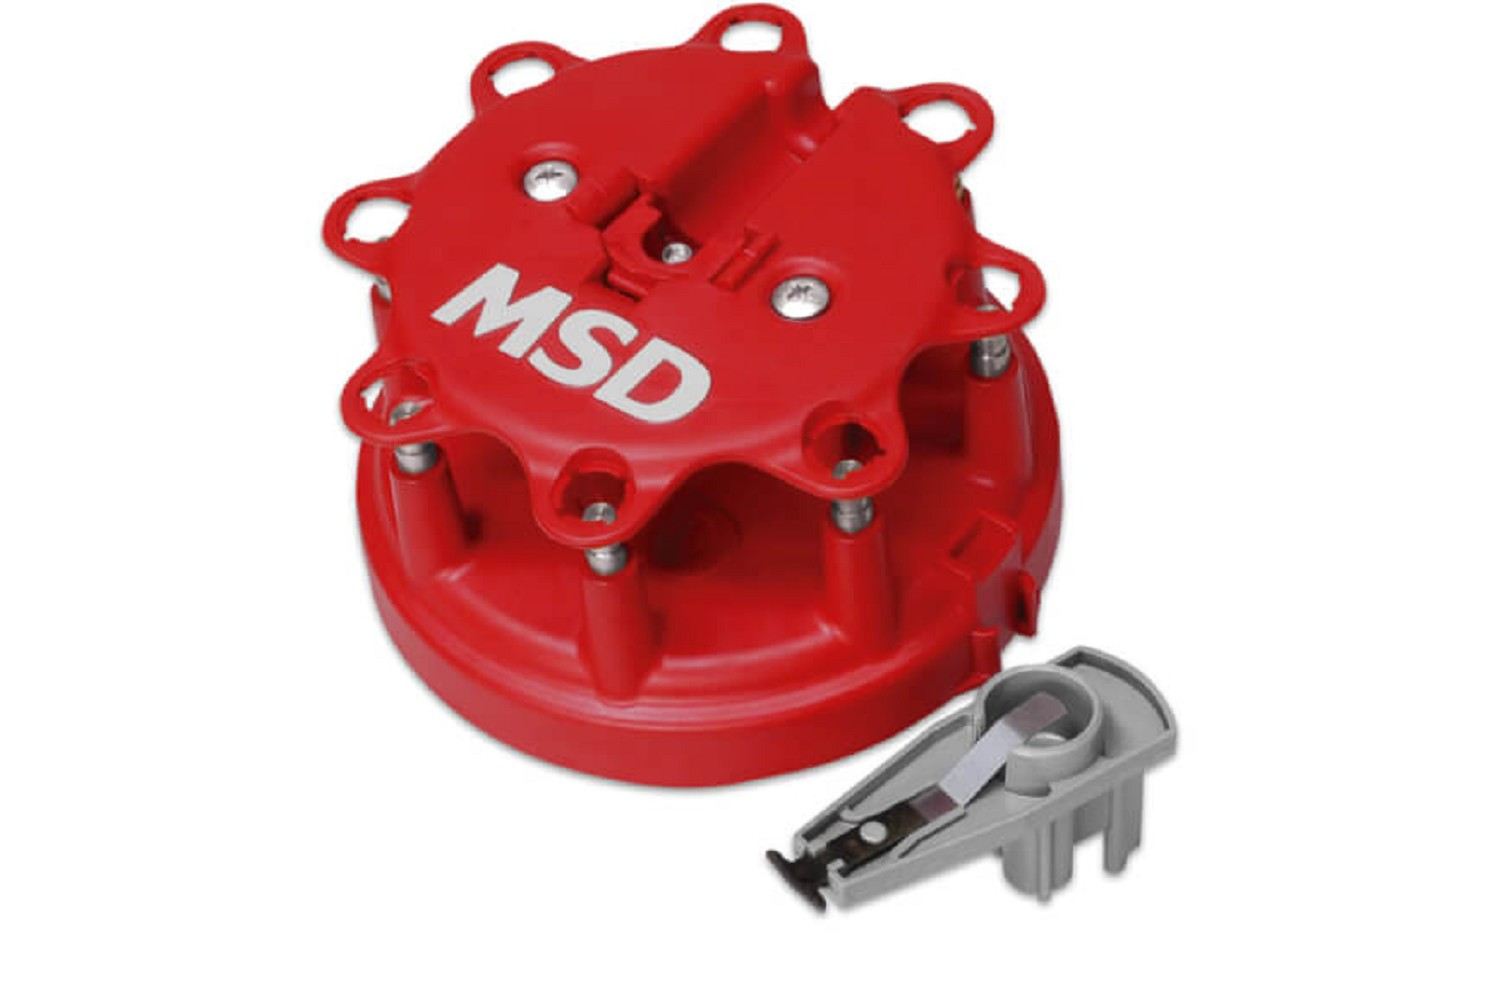 Msd Mustang Replacement Cap Rotor 85 95 50l 524 8482 Steeda 94 Wiring Harness